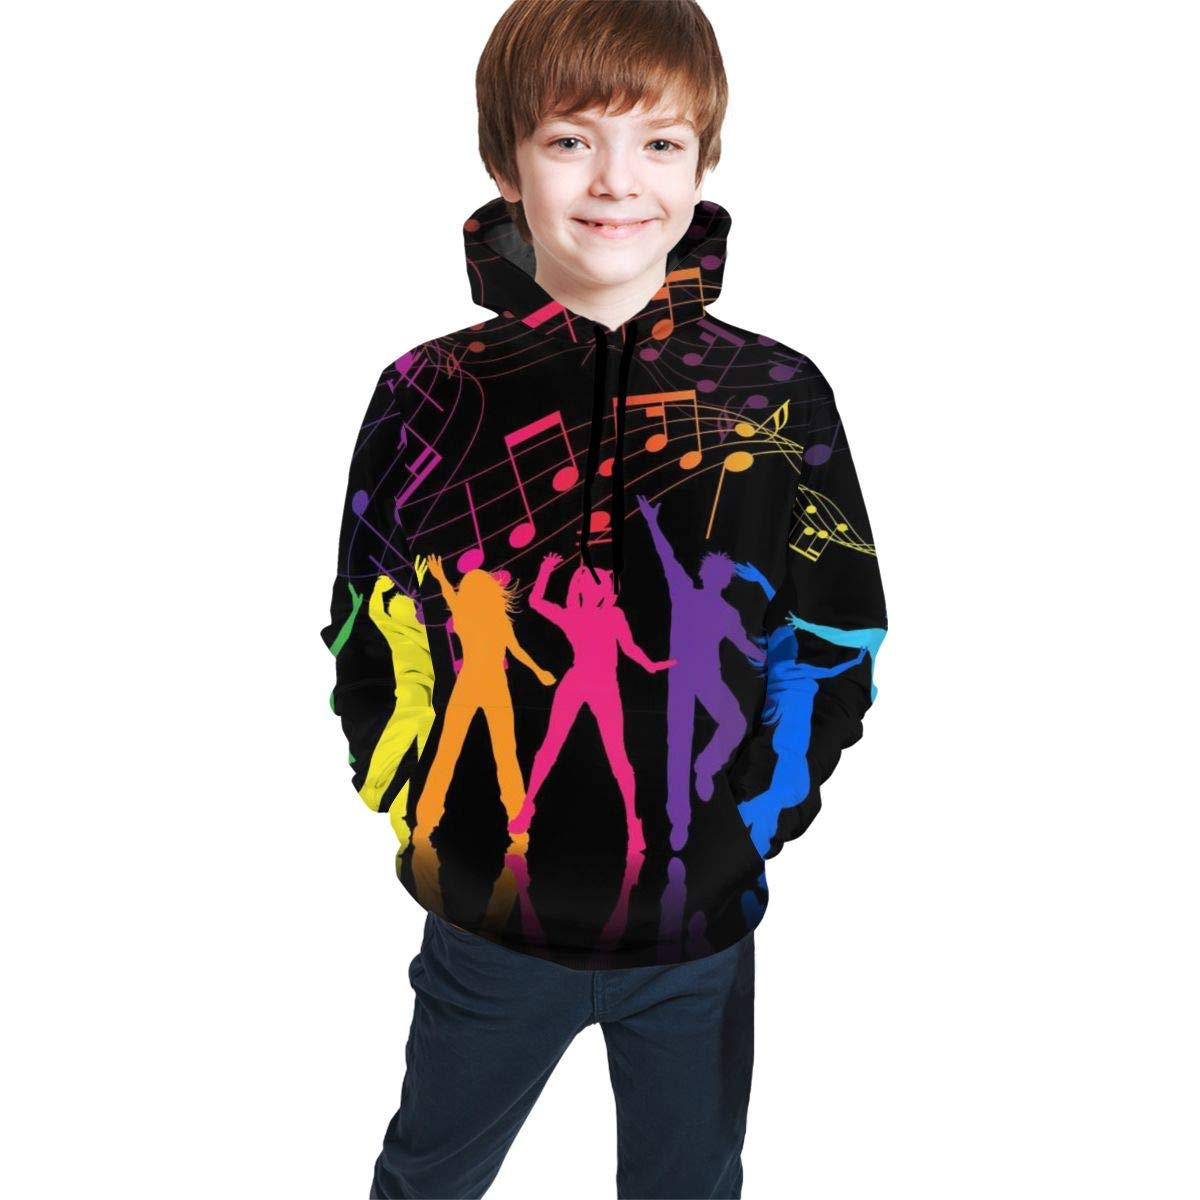 Youth Hoodie Sweatshirt Dance with Music Realistic 3D Digital Printed Pullover Tops for Boys Girls 7-20 Years